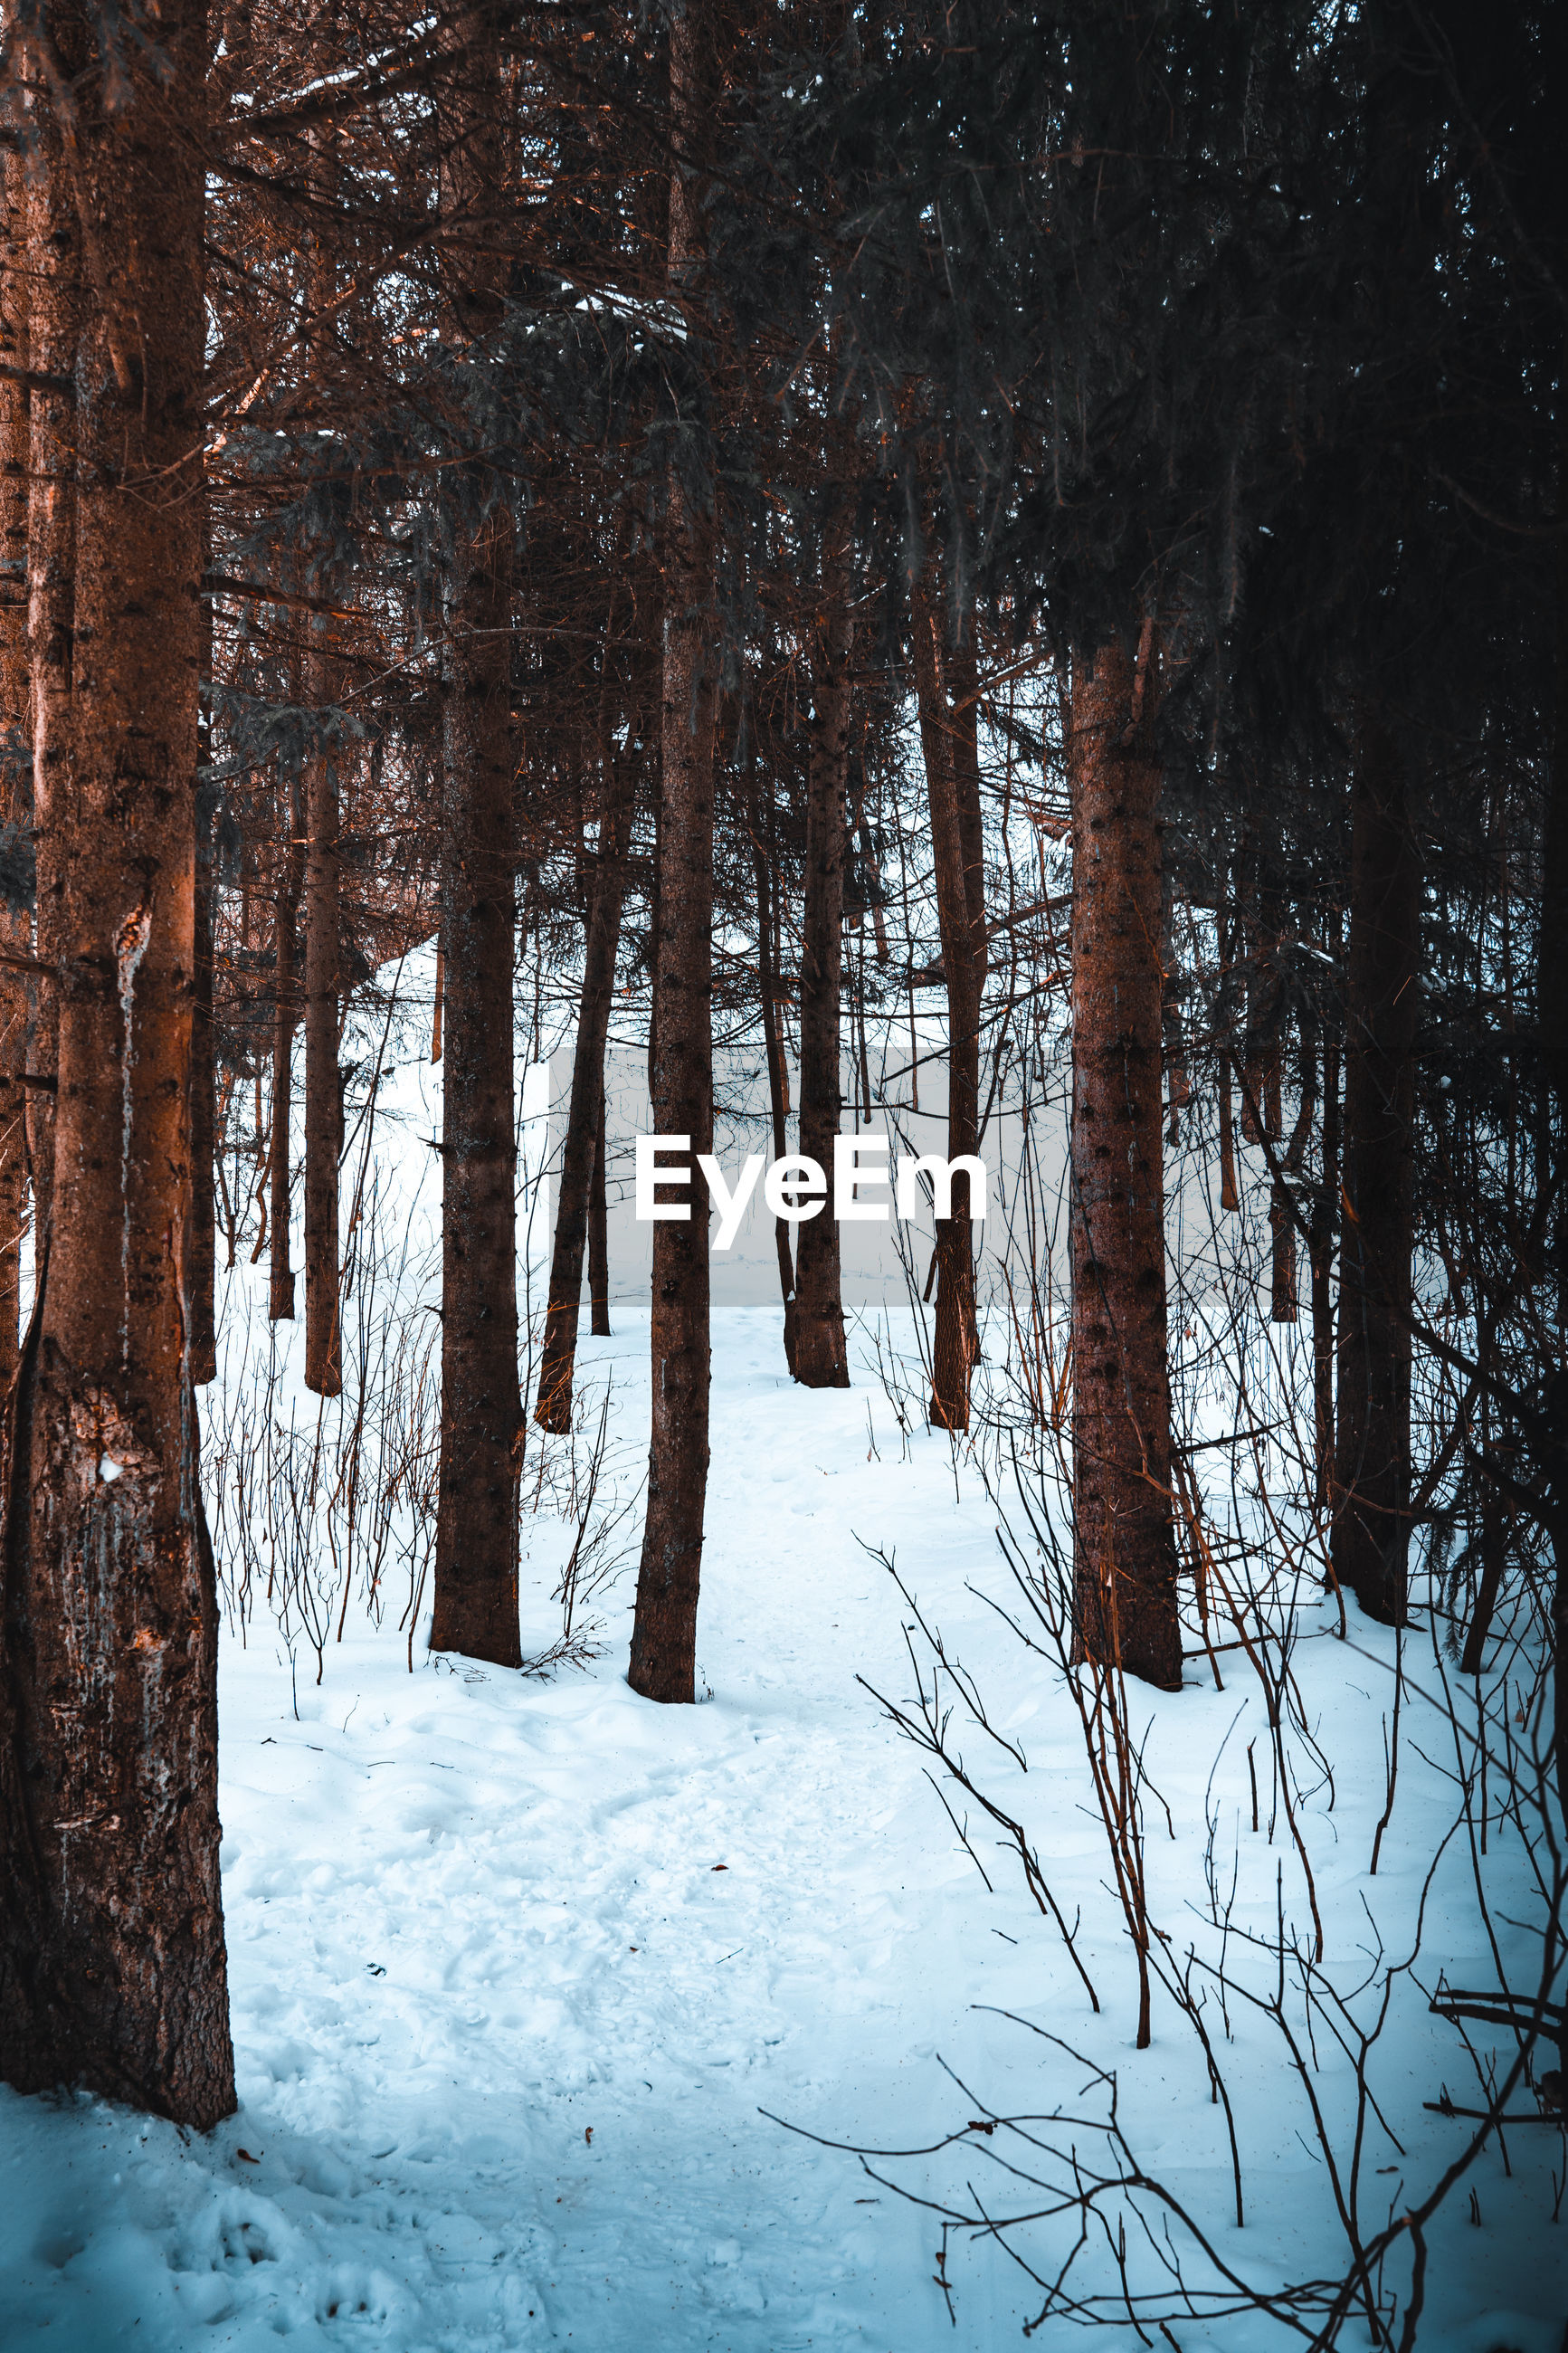 Scenic view of frozen trees in forest during winter